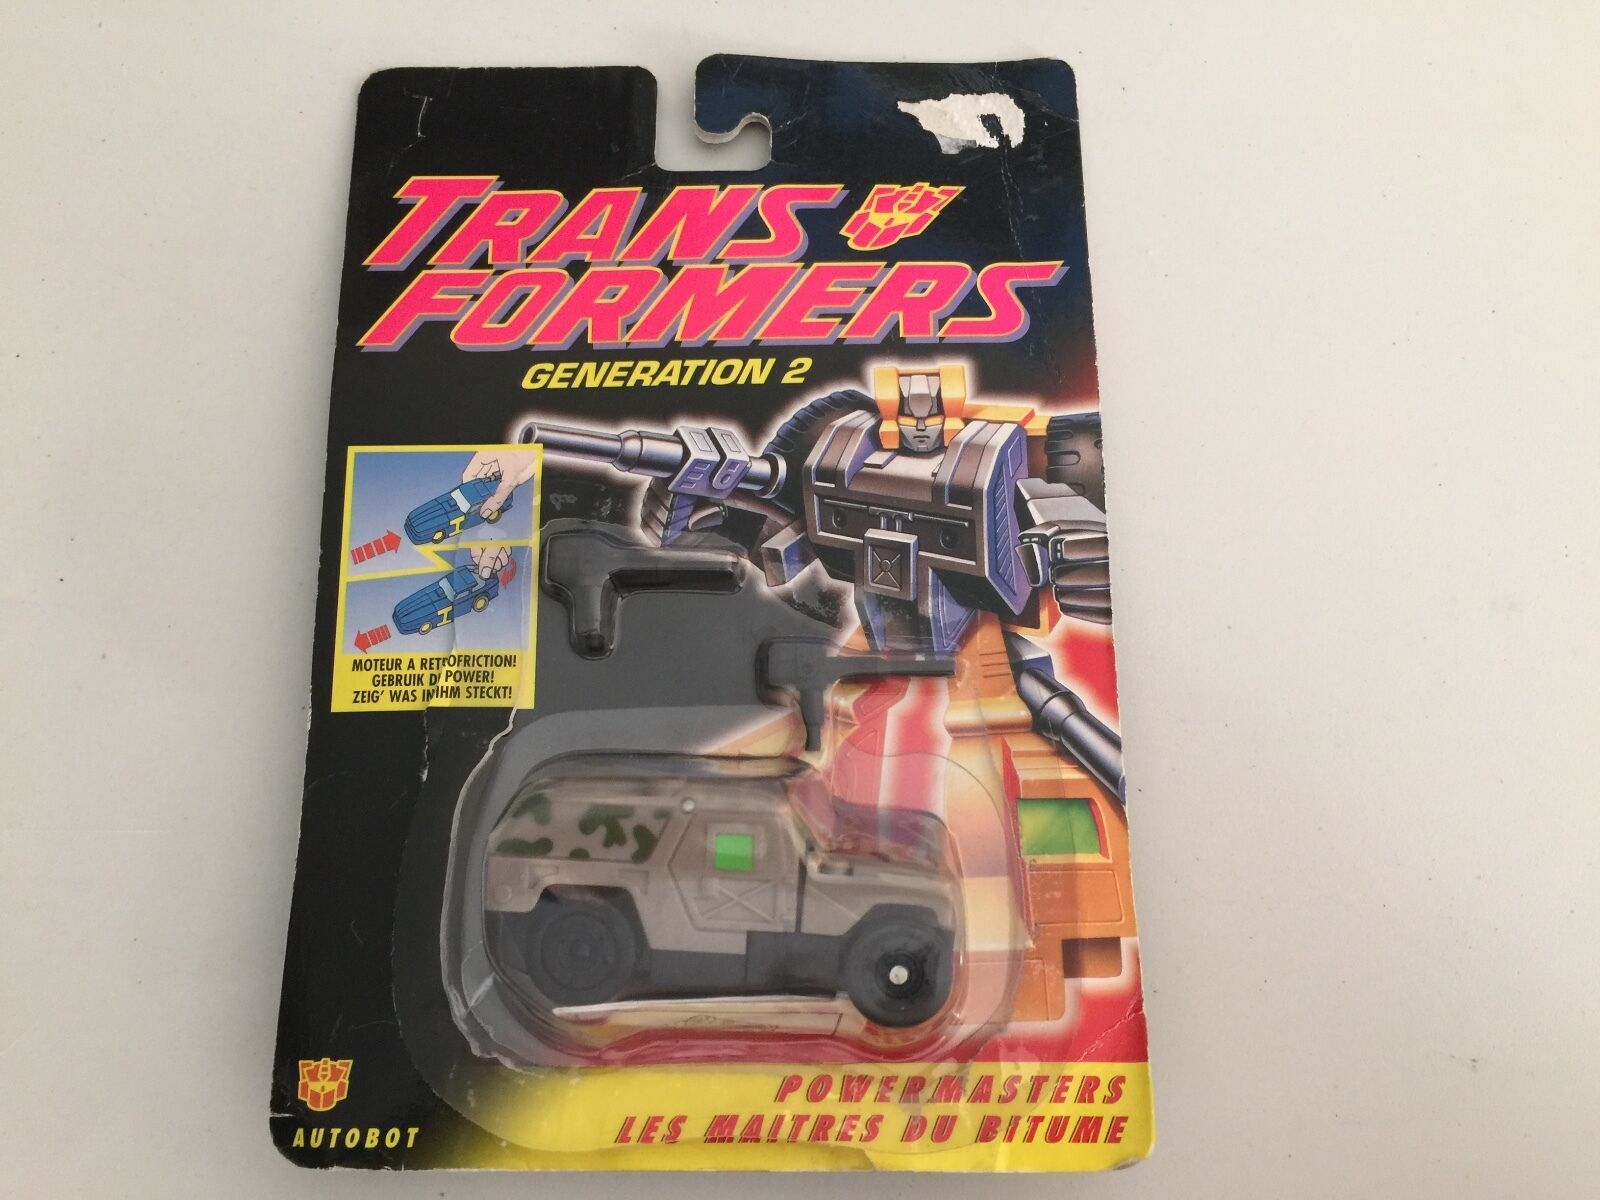 Transformers  G2 1994 Ironhide Comme neuf on voitured complet powermasters Figure Européenne Hasbro  bienvenue à choisir